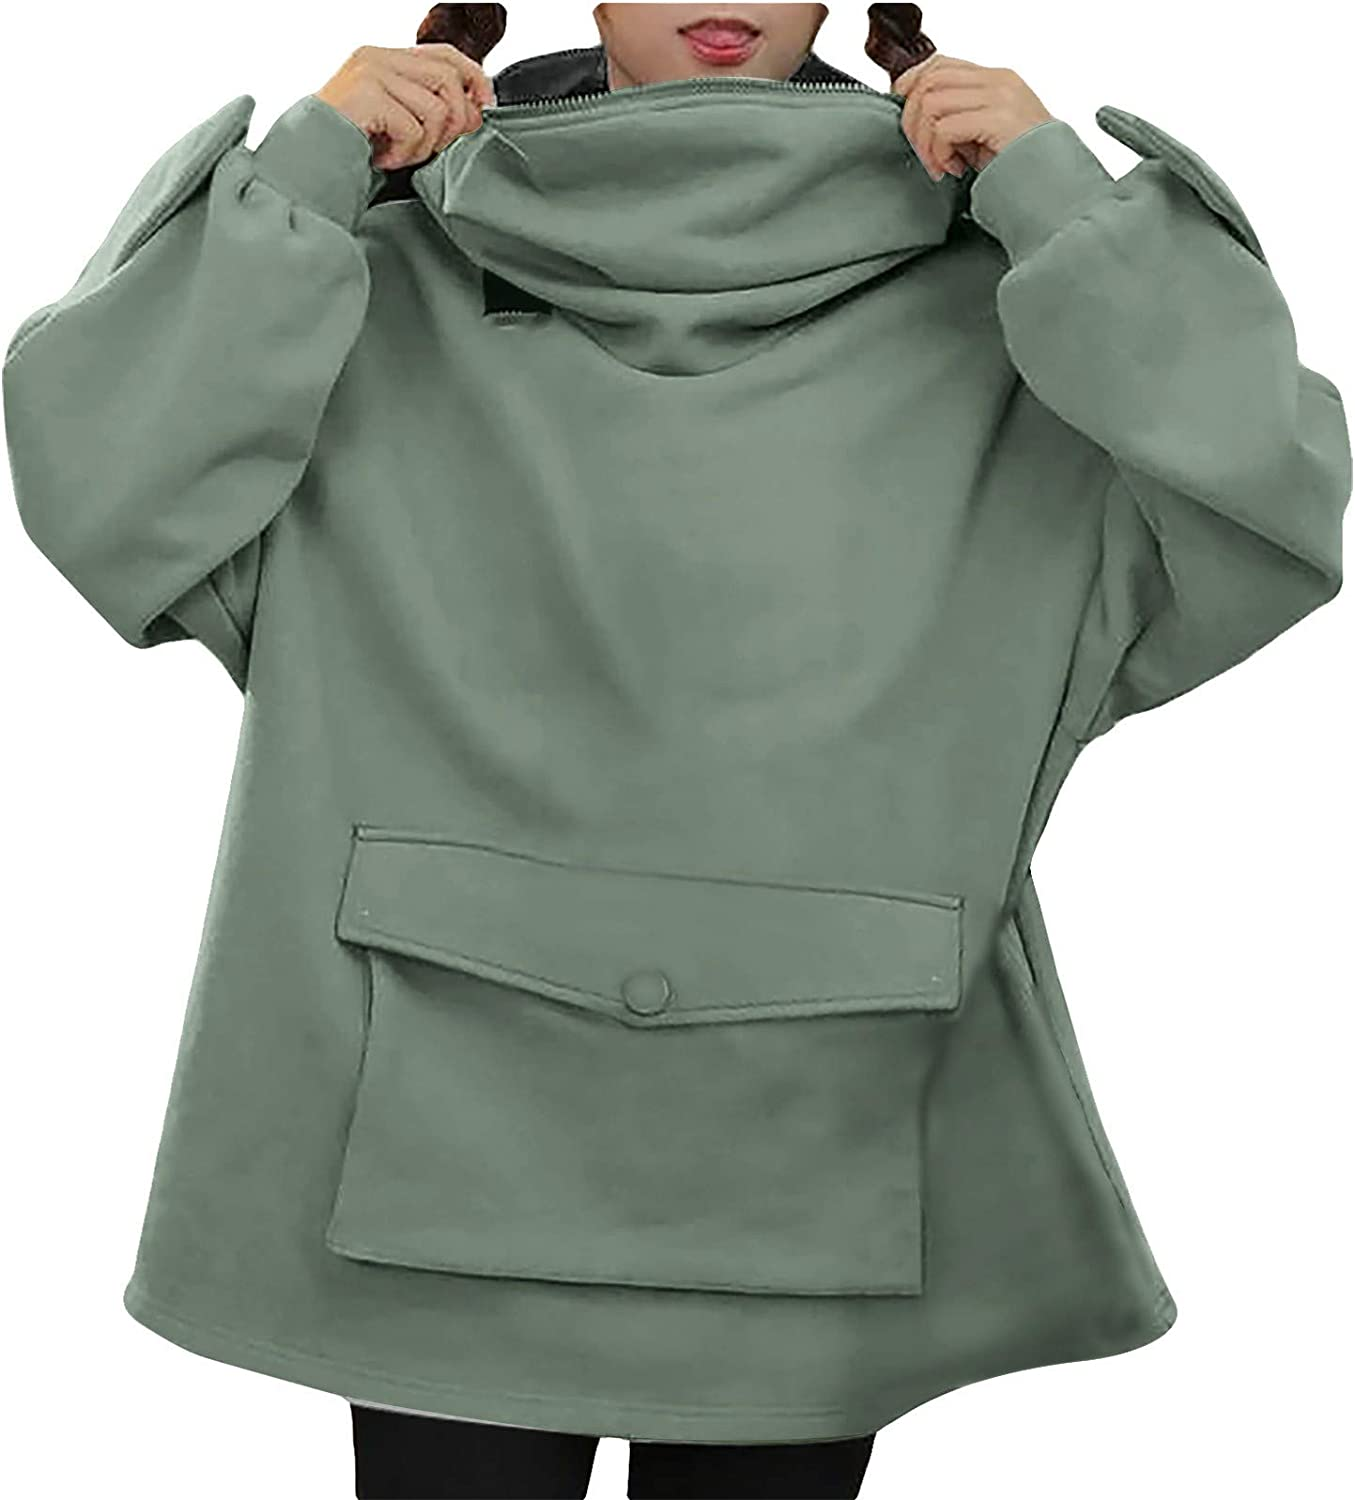 Womens Girls Frog Hoodie Zipper Mouth Hooded Pullover Sweatshirt with Large Pocket